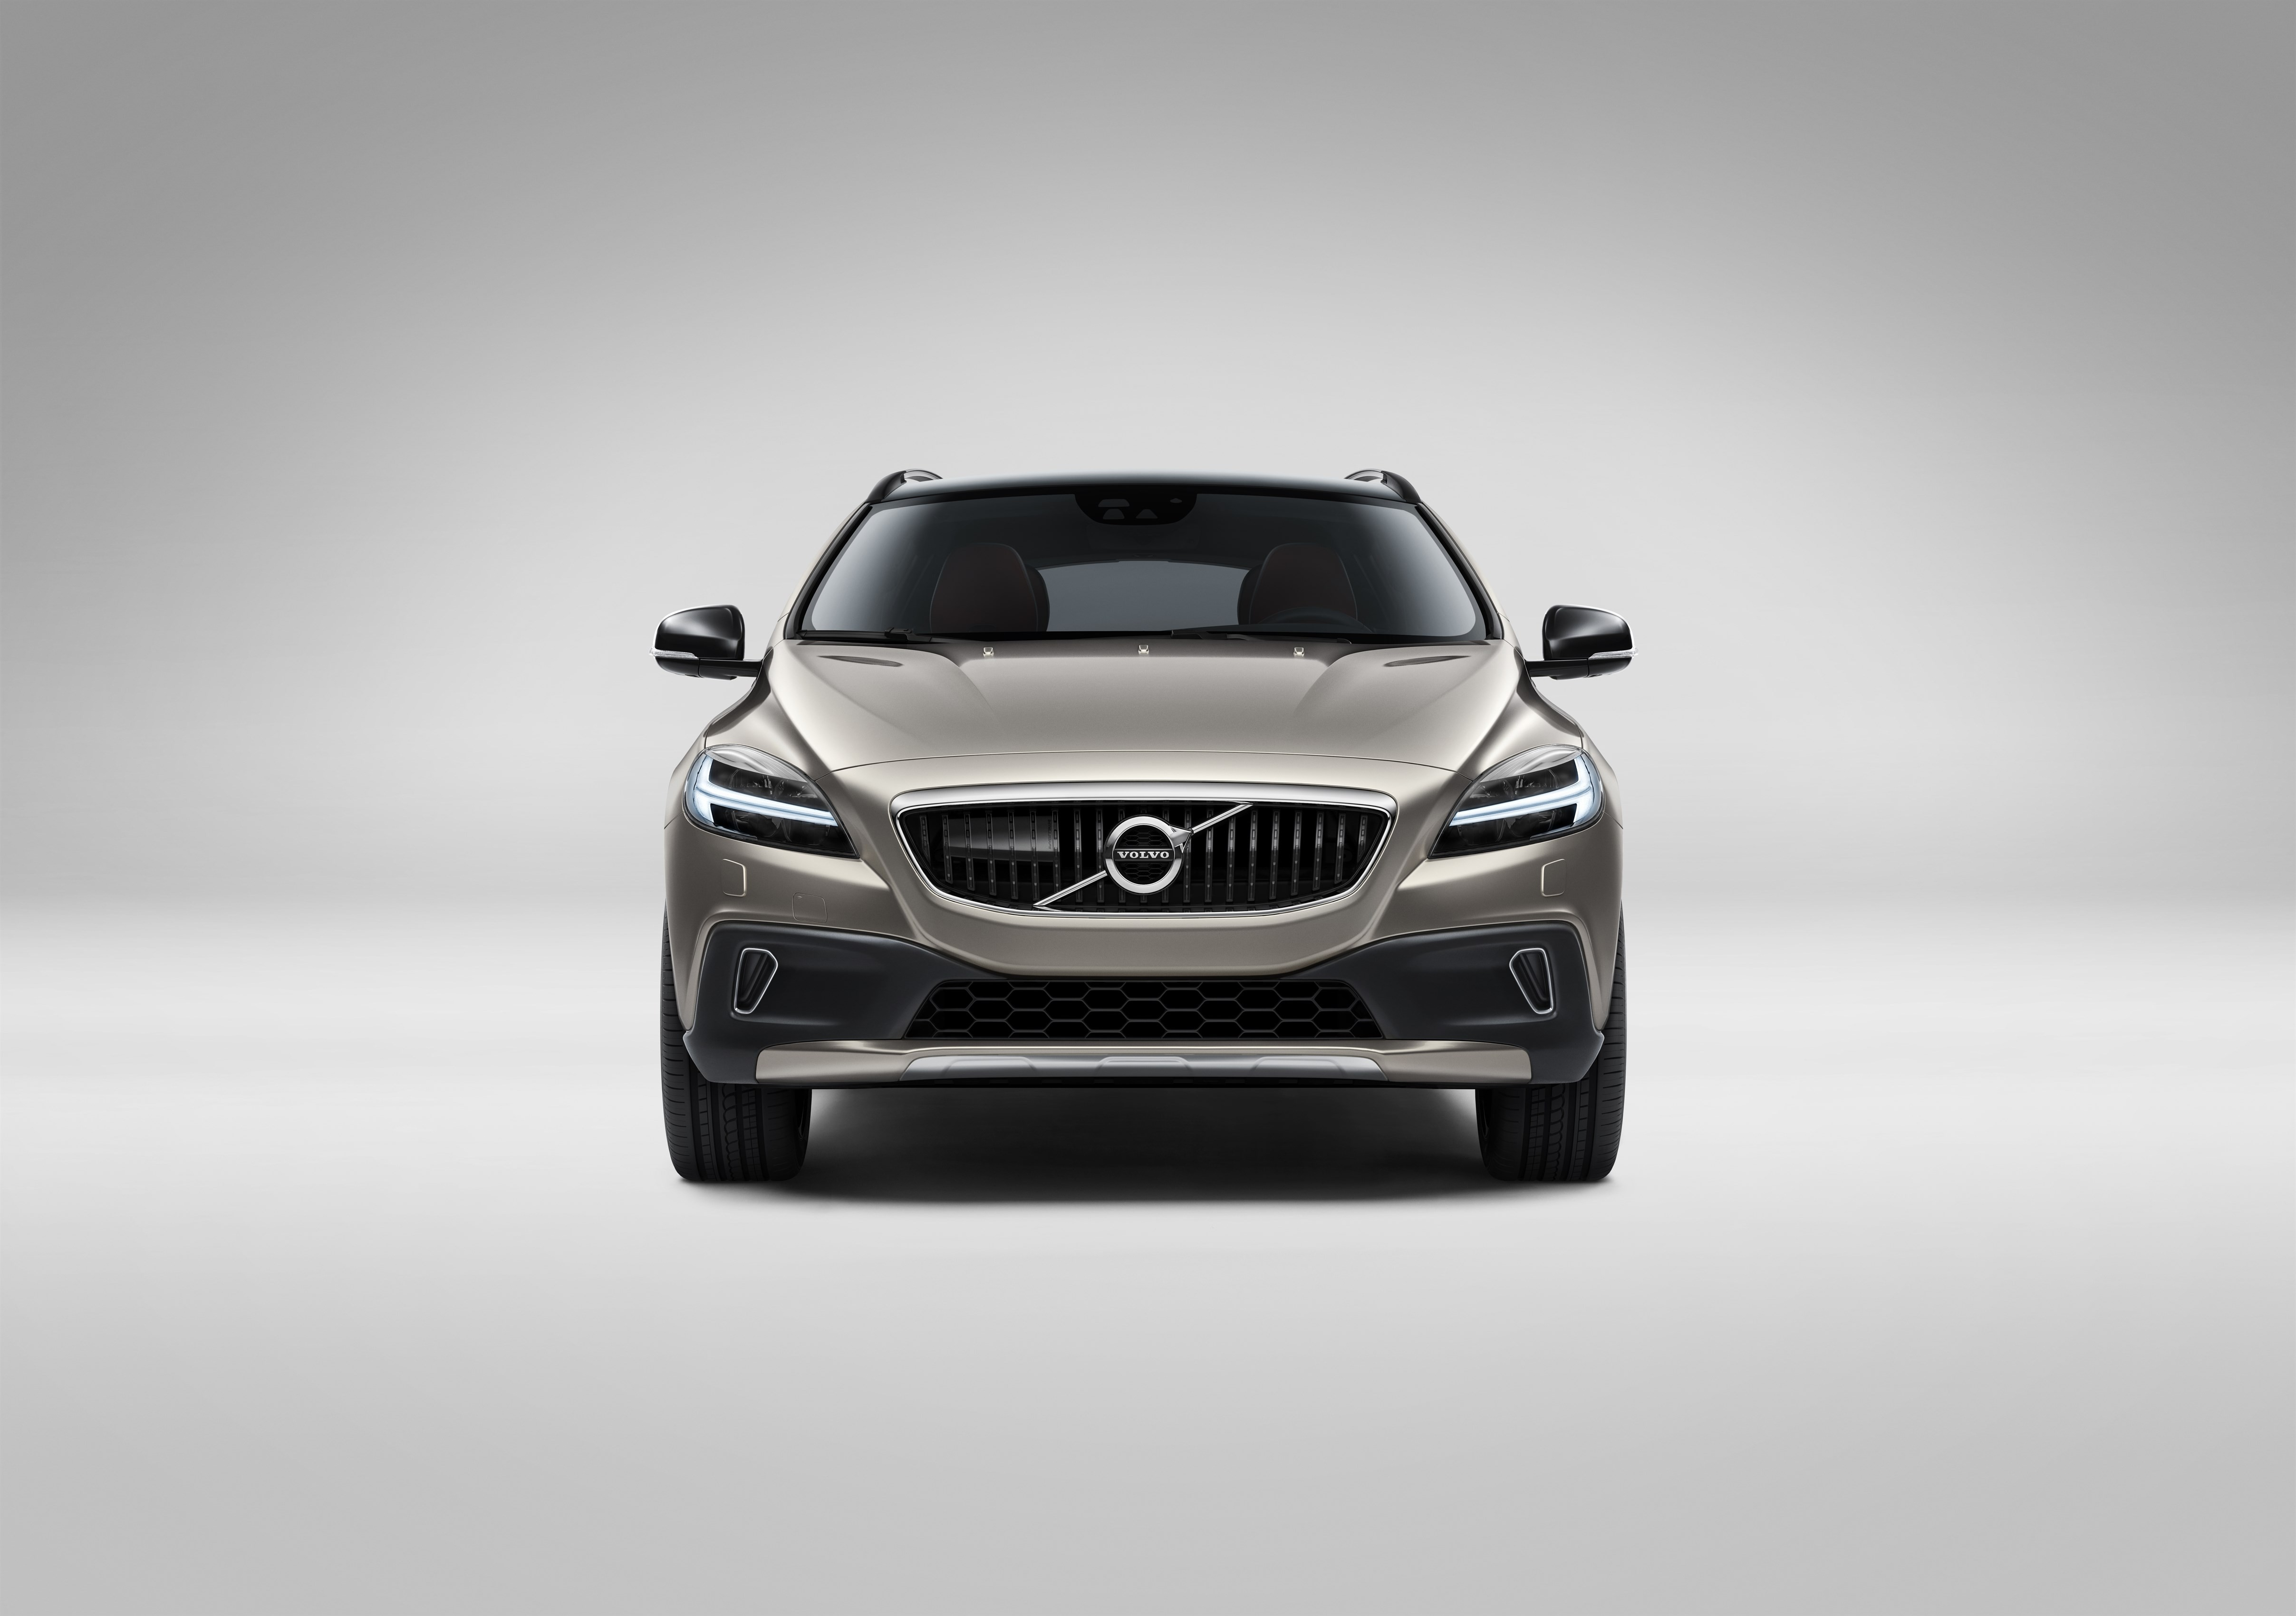 2019 Volvo V40 Will Spawn New EV With Two Battery Options - autoevolution